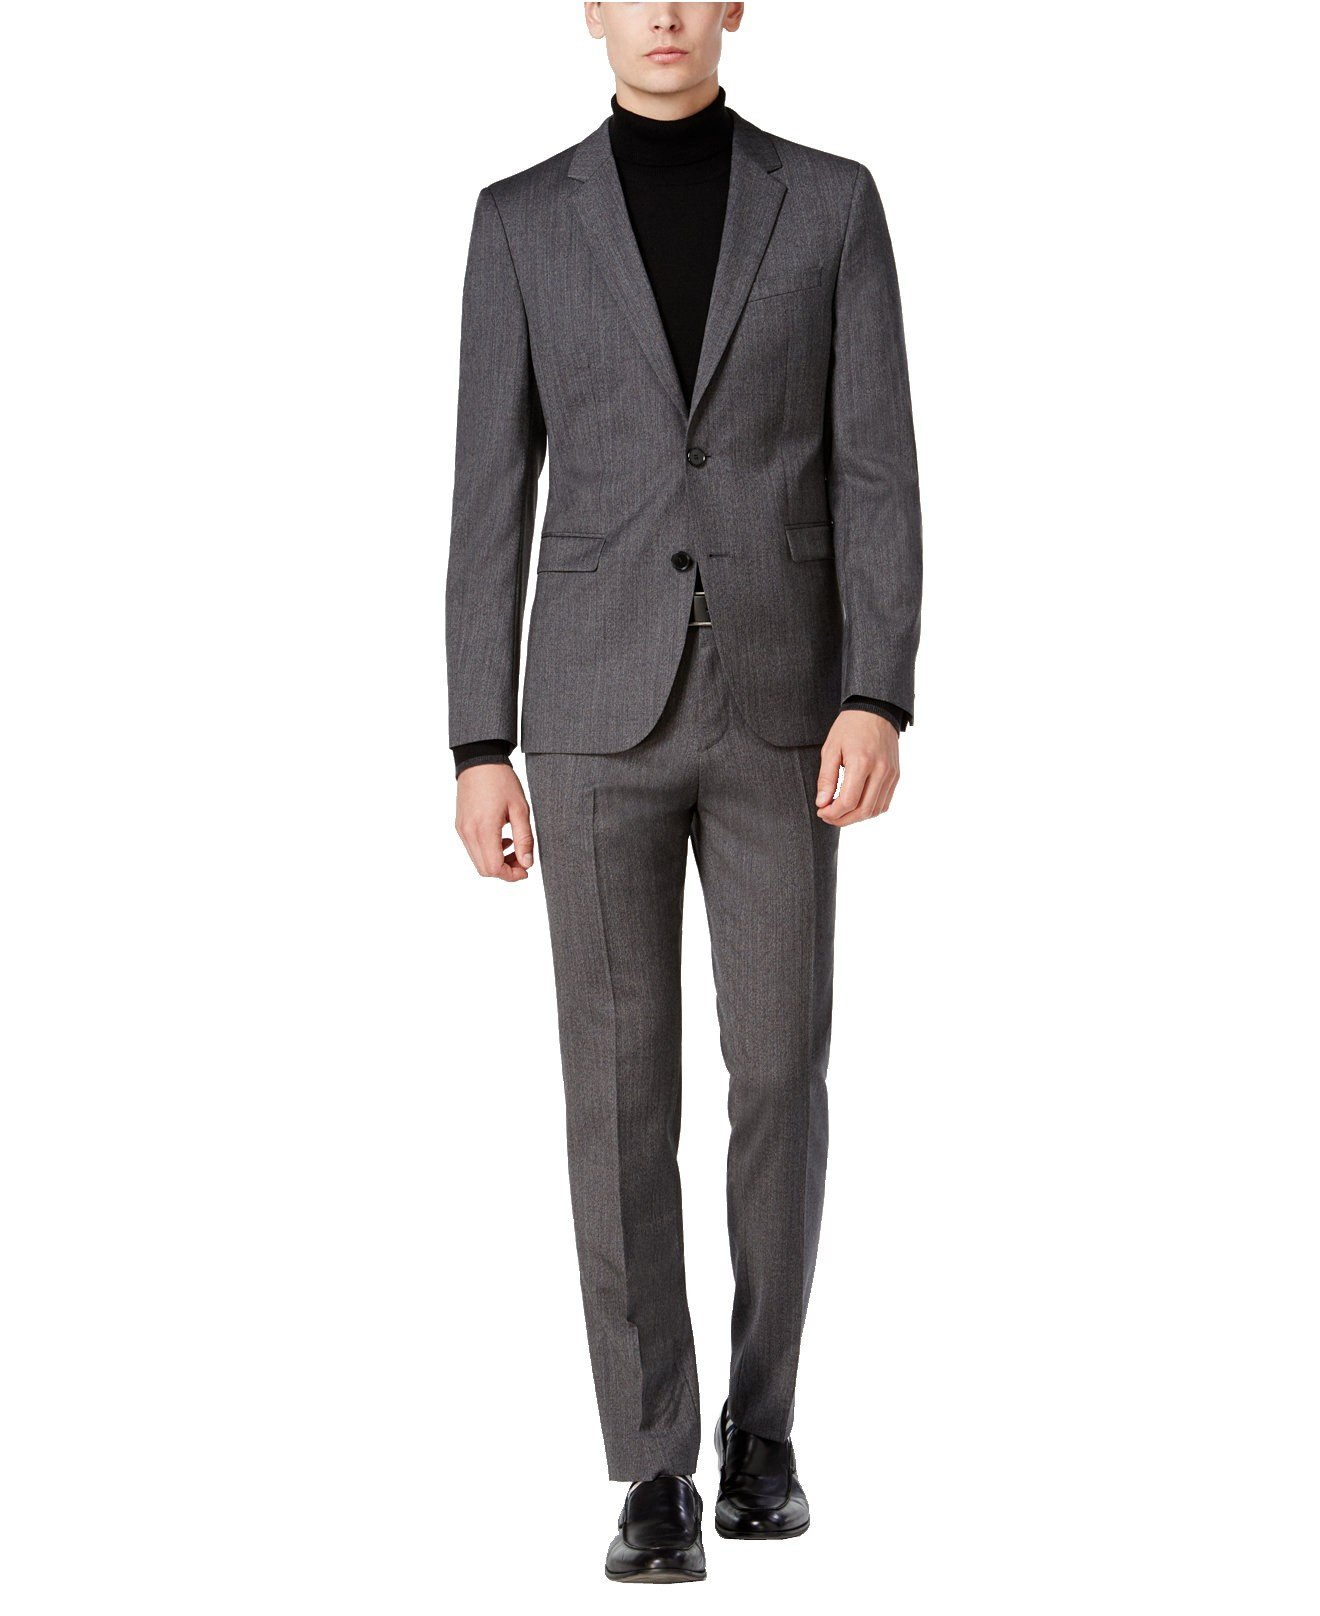 Hugo Boss Astian/Hets Extra Slim Fit 2 Piece Men's 100% Virgin Wool Suit Melange Herringbone 50320624 033 by HUGO (46 Regular USA Jacket / 40 Waist Pants) by HUGO BOSS (Image #1)